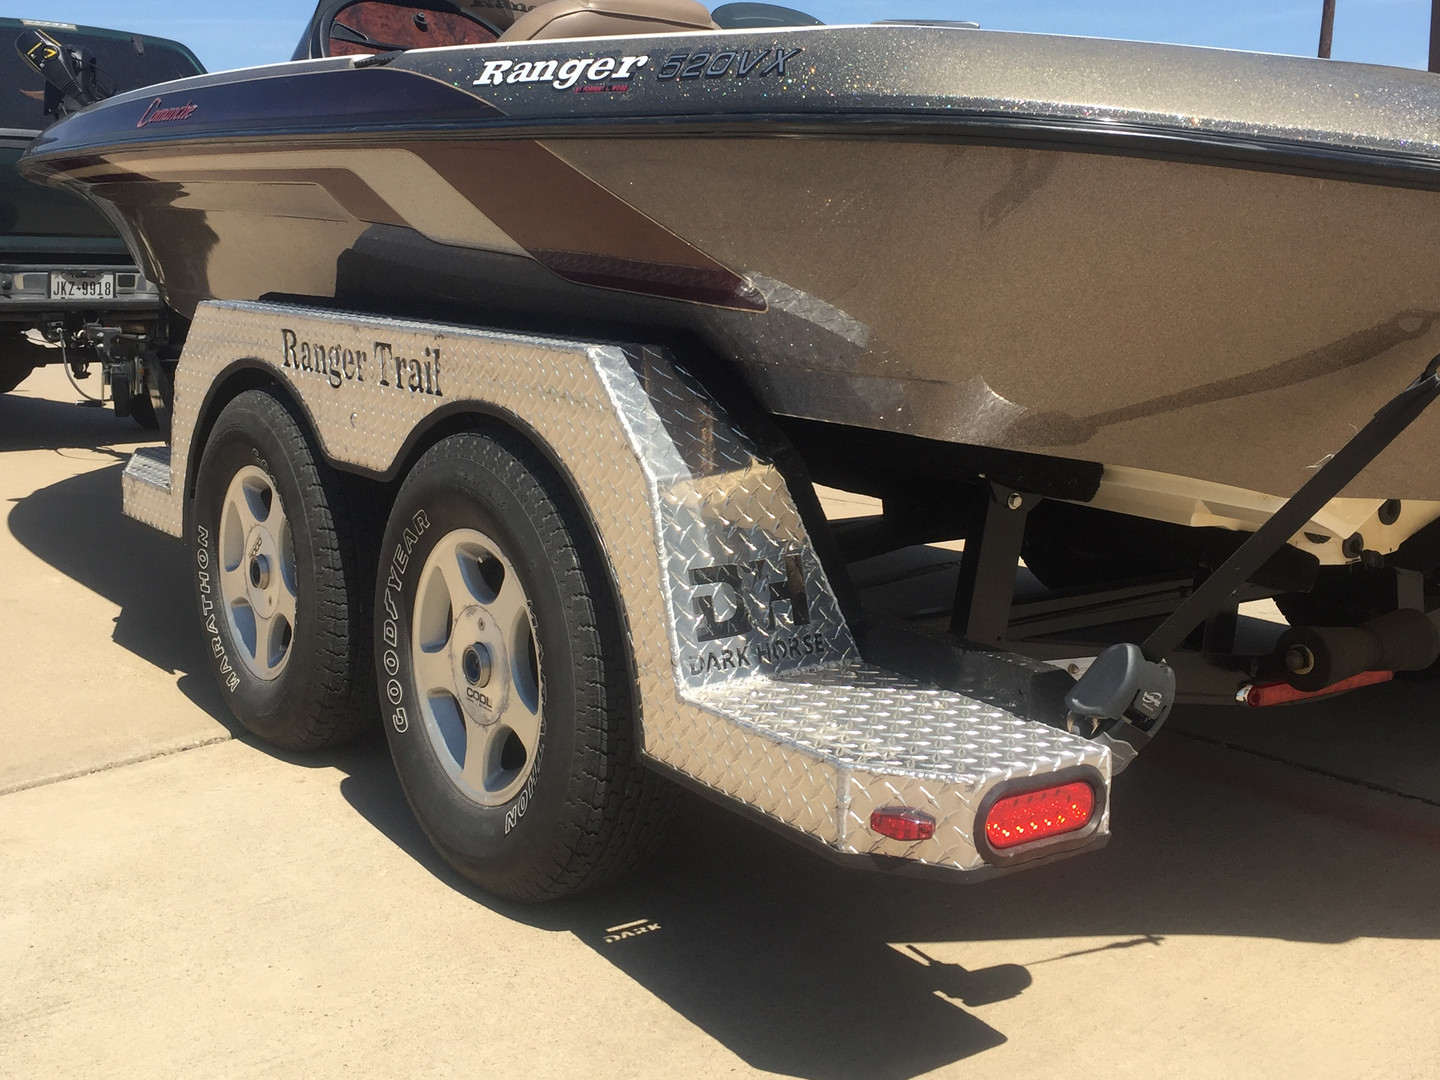 Restored boat trailer with logo cutouts